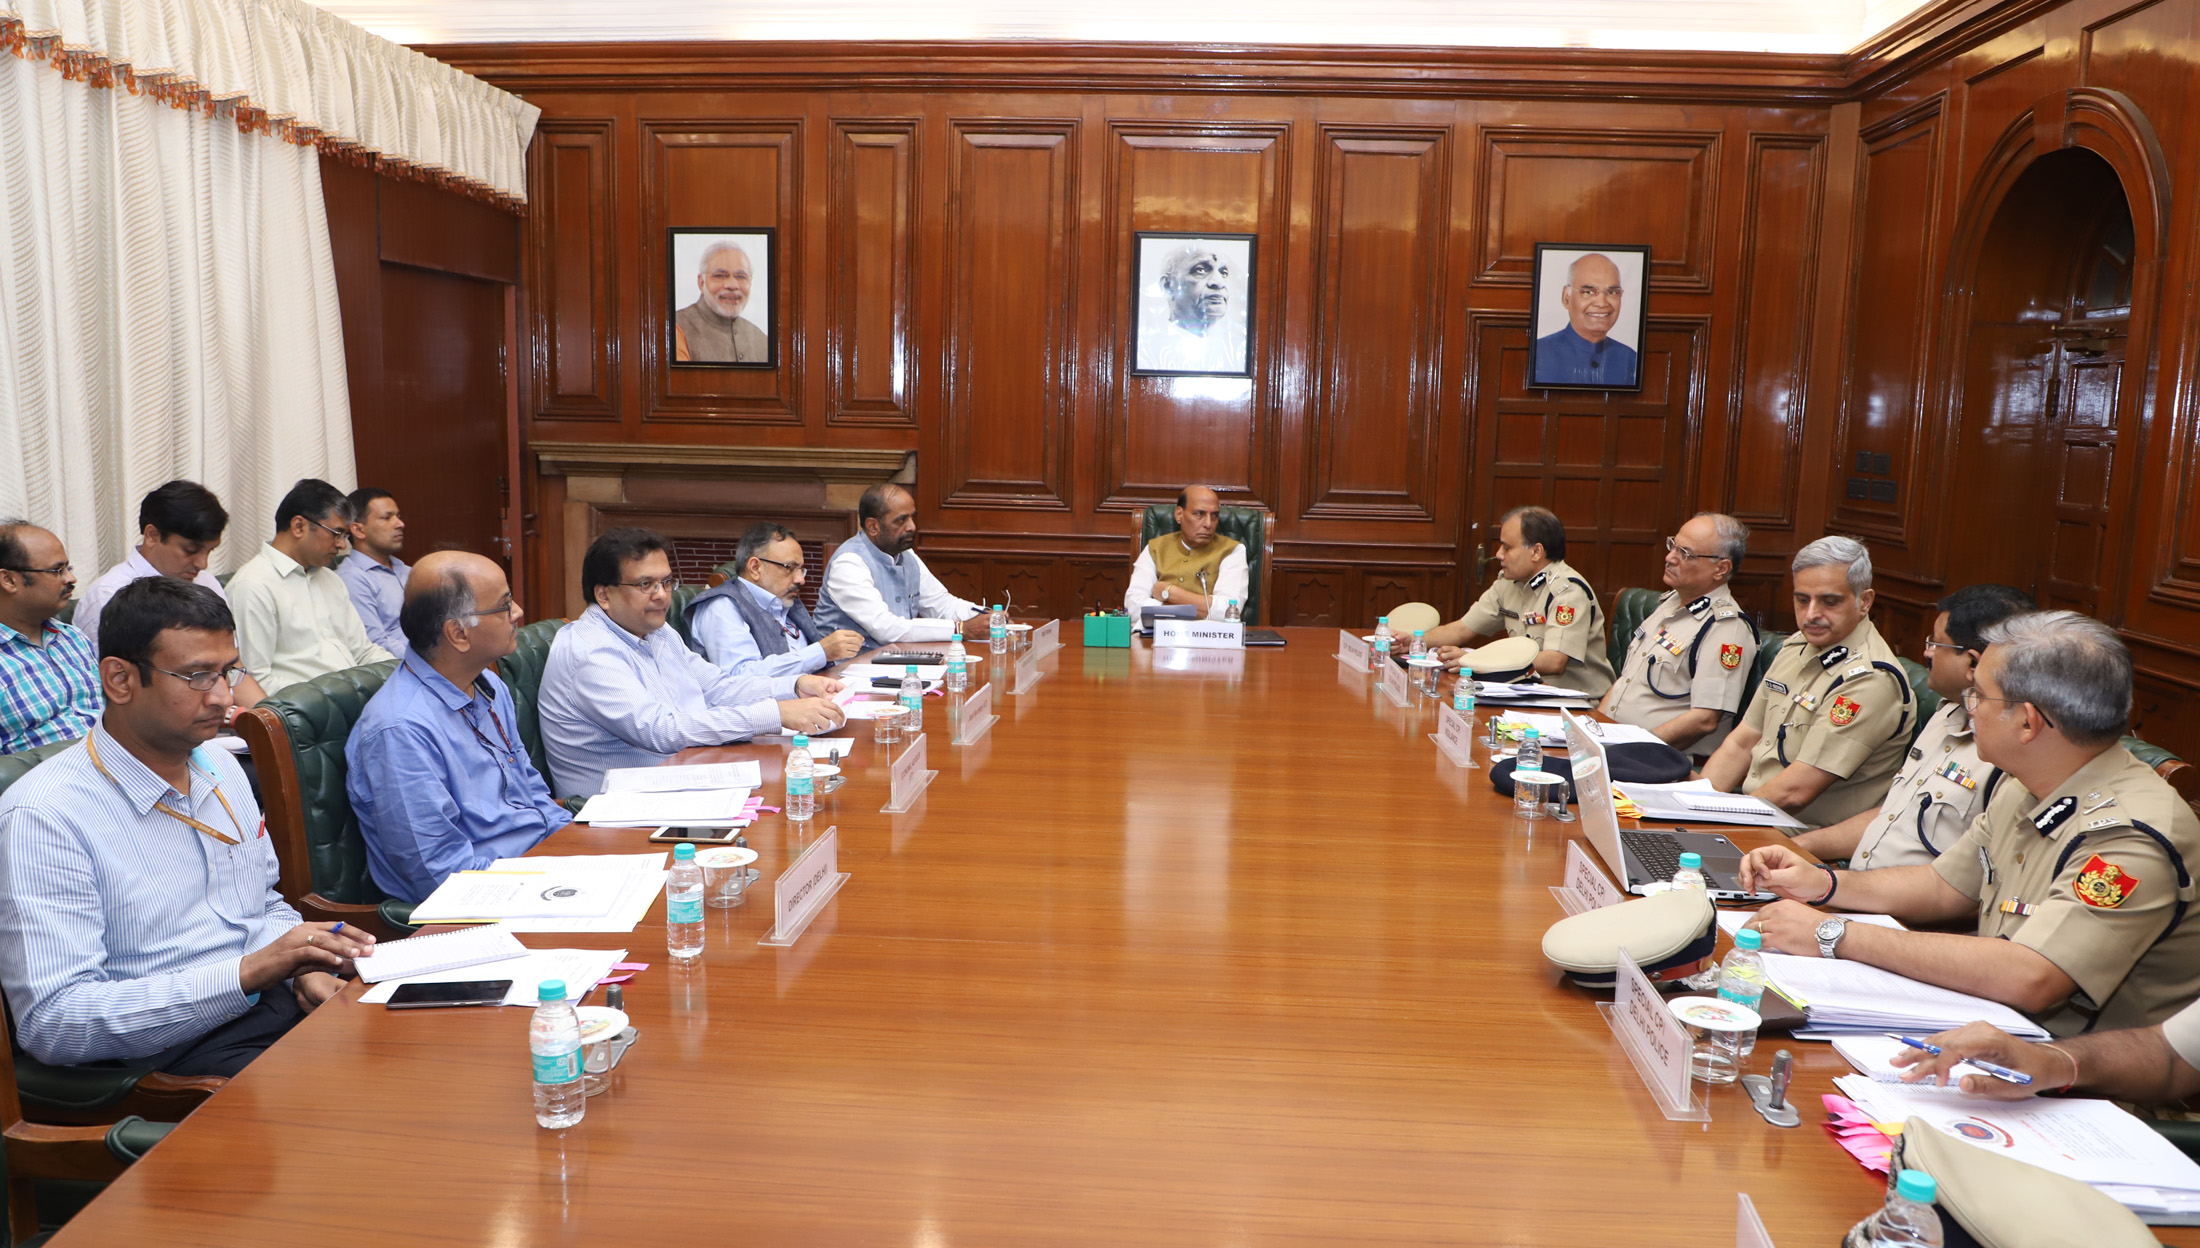 The Union Home Minister, Shri Rajnath Singh chairing a review meeting of the Delhi Police, in New Delhi on June 29, 2018. The Minister of State for Home Affairs, Shri Hansraj Gangaram Ahir, the Union Home Secretary, Shri Rajiv Gauba and the Delhi Police Commissioner, Shri Amulya Patnaik and senior officers are also seen.